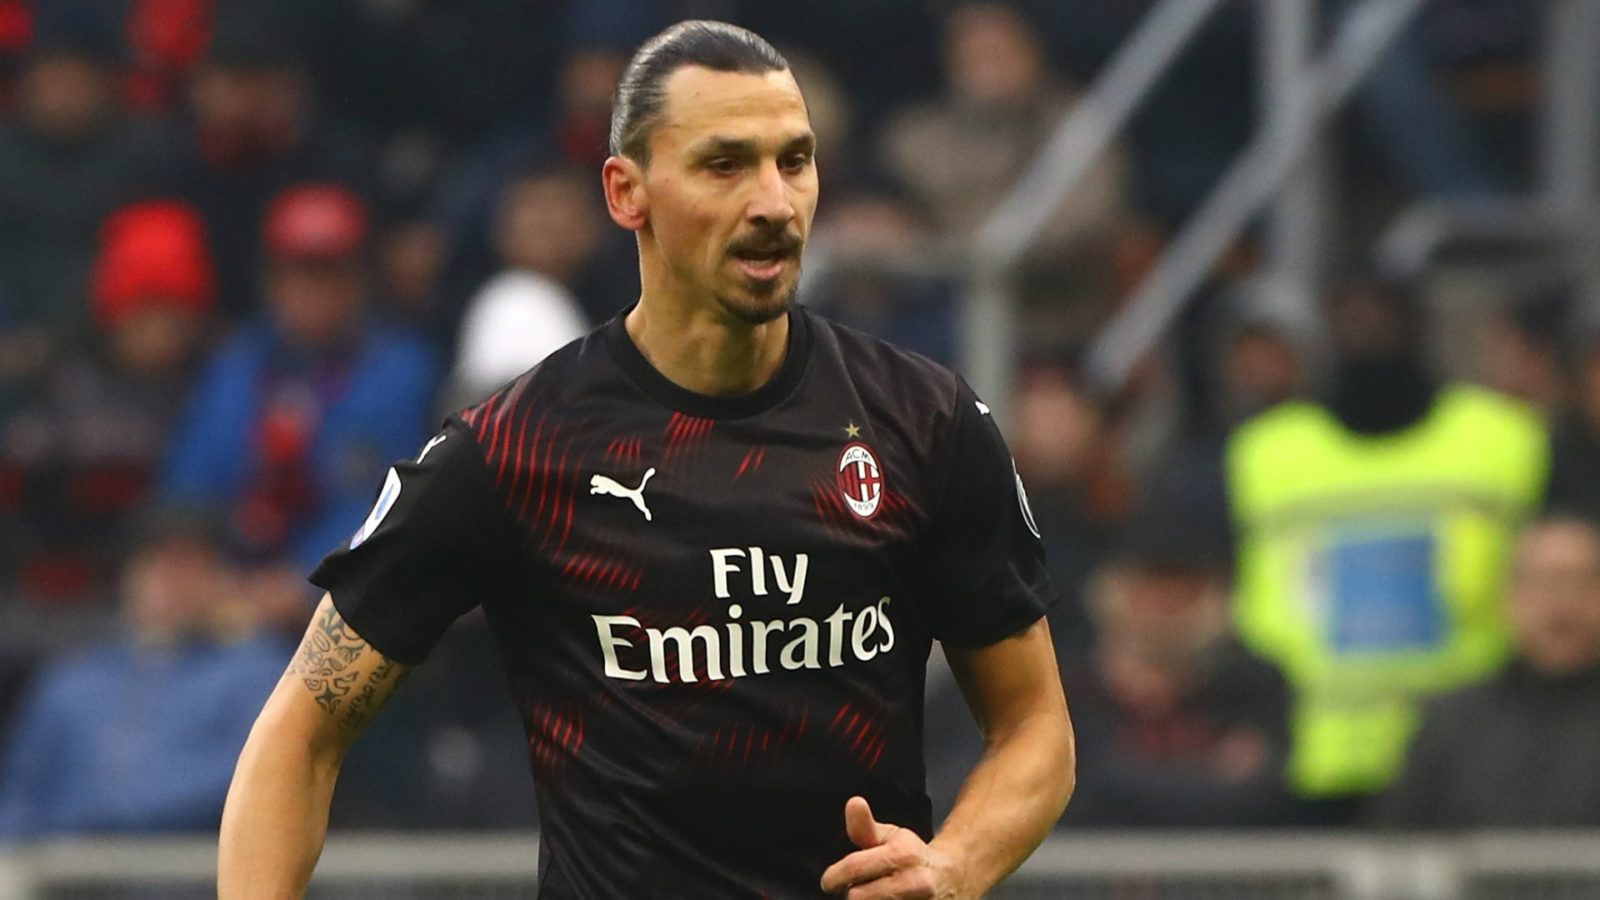 cagliari-0-2-milan:-zlatan-ibrahimovic-inspires-visitors-on-first-start